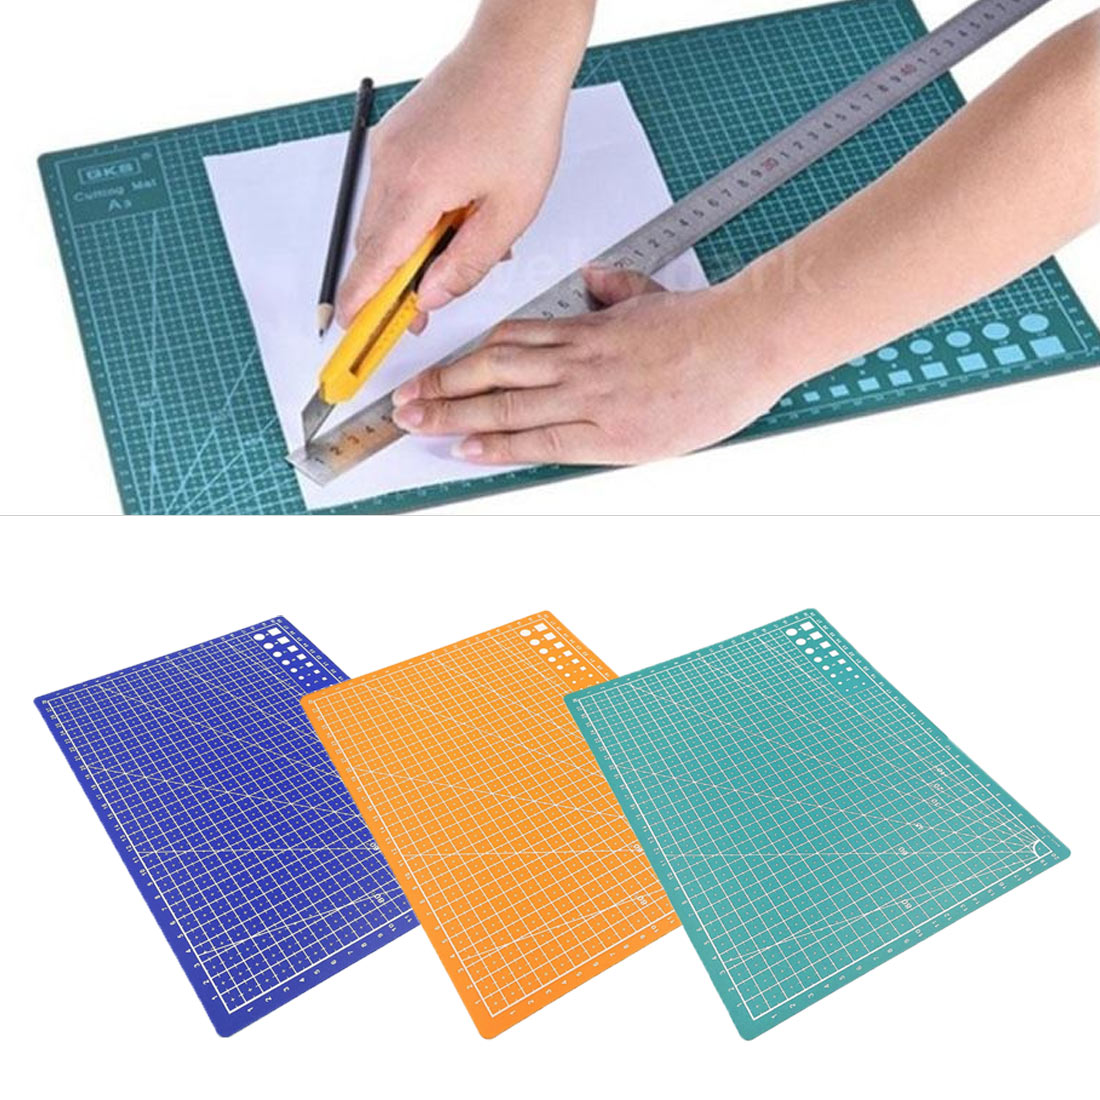 1PC A4 Grid Line Self-healing Cutting Pad Craft Card Cloth Leather Cardboard Sewing Tool PP Cutting Mat Pad Patchwork Cut Pad